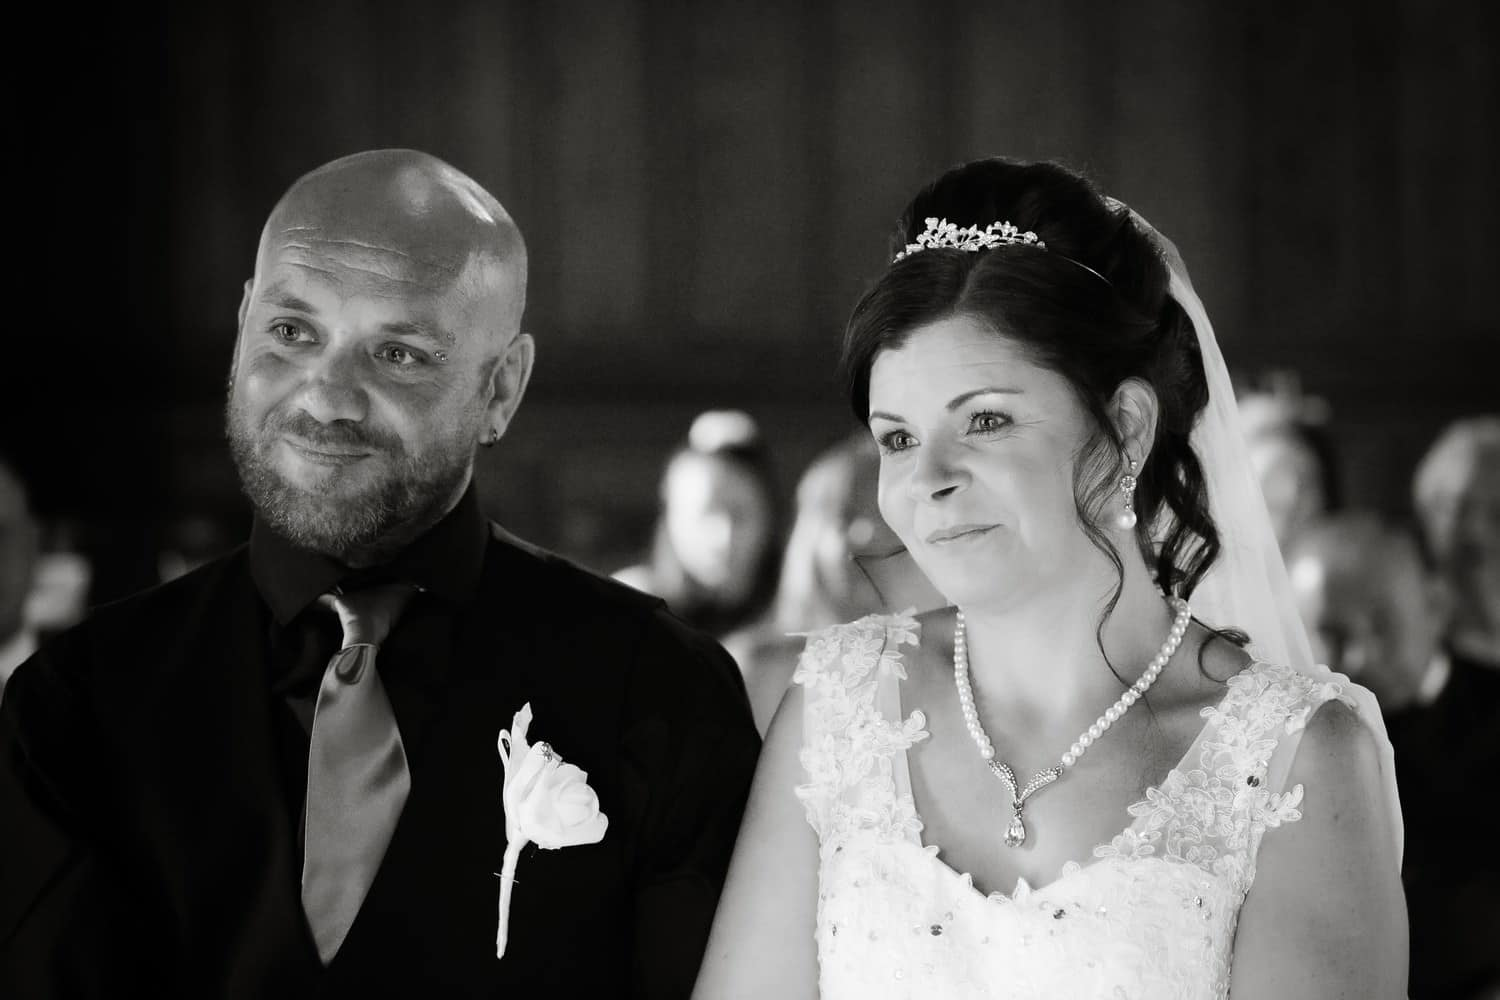 Bride and Groom during the ceremony at Carlisle Registry Office